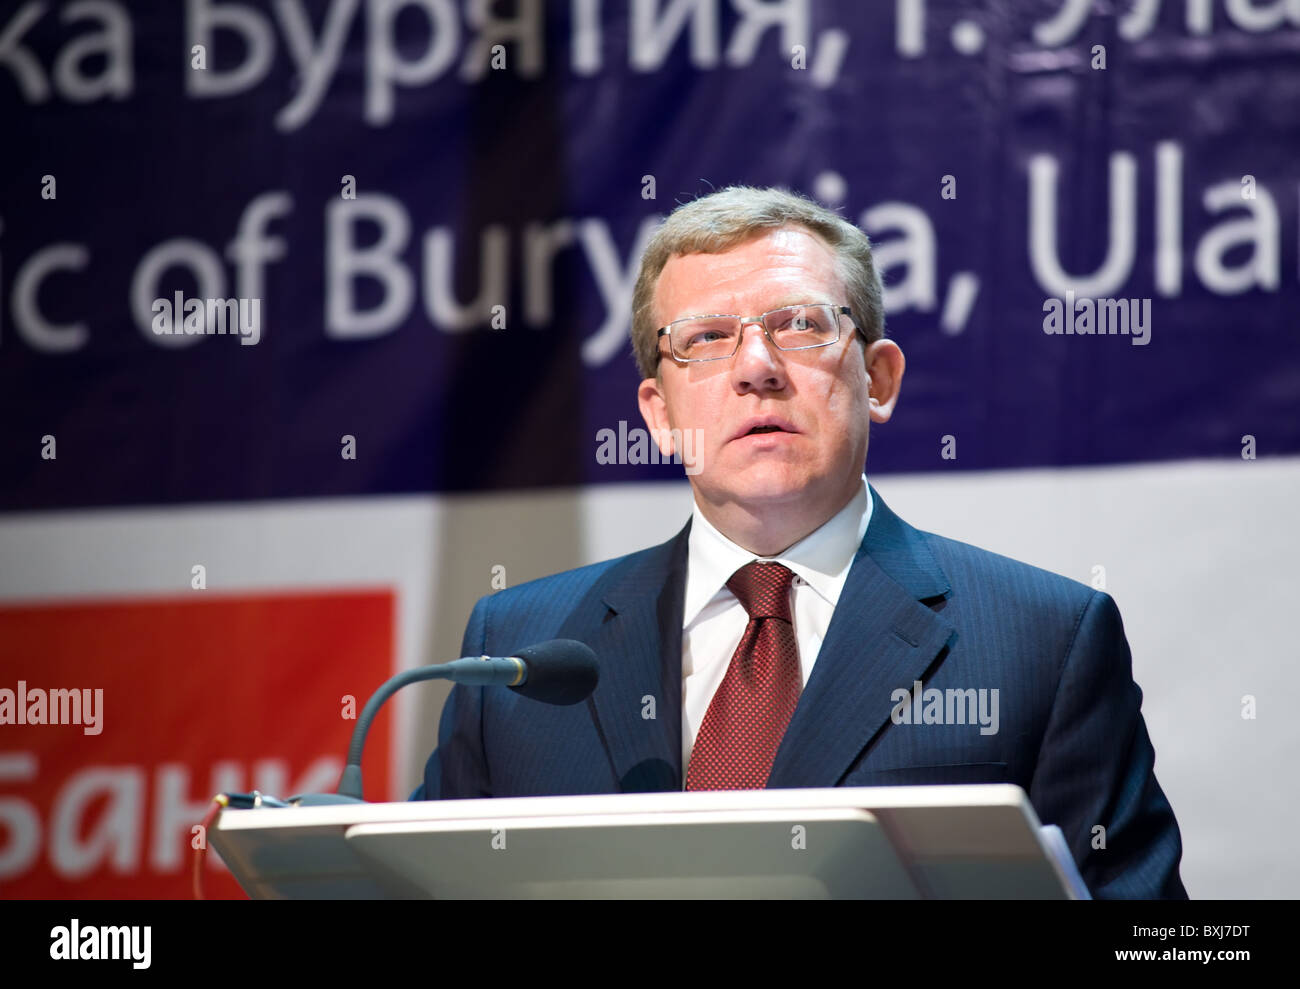 ULAN-UDE, RUSSIA - JULY 9: The minister of finance of Russia Aleksei Kudrin speaks on the world crisis matter at - Stock Image